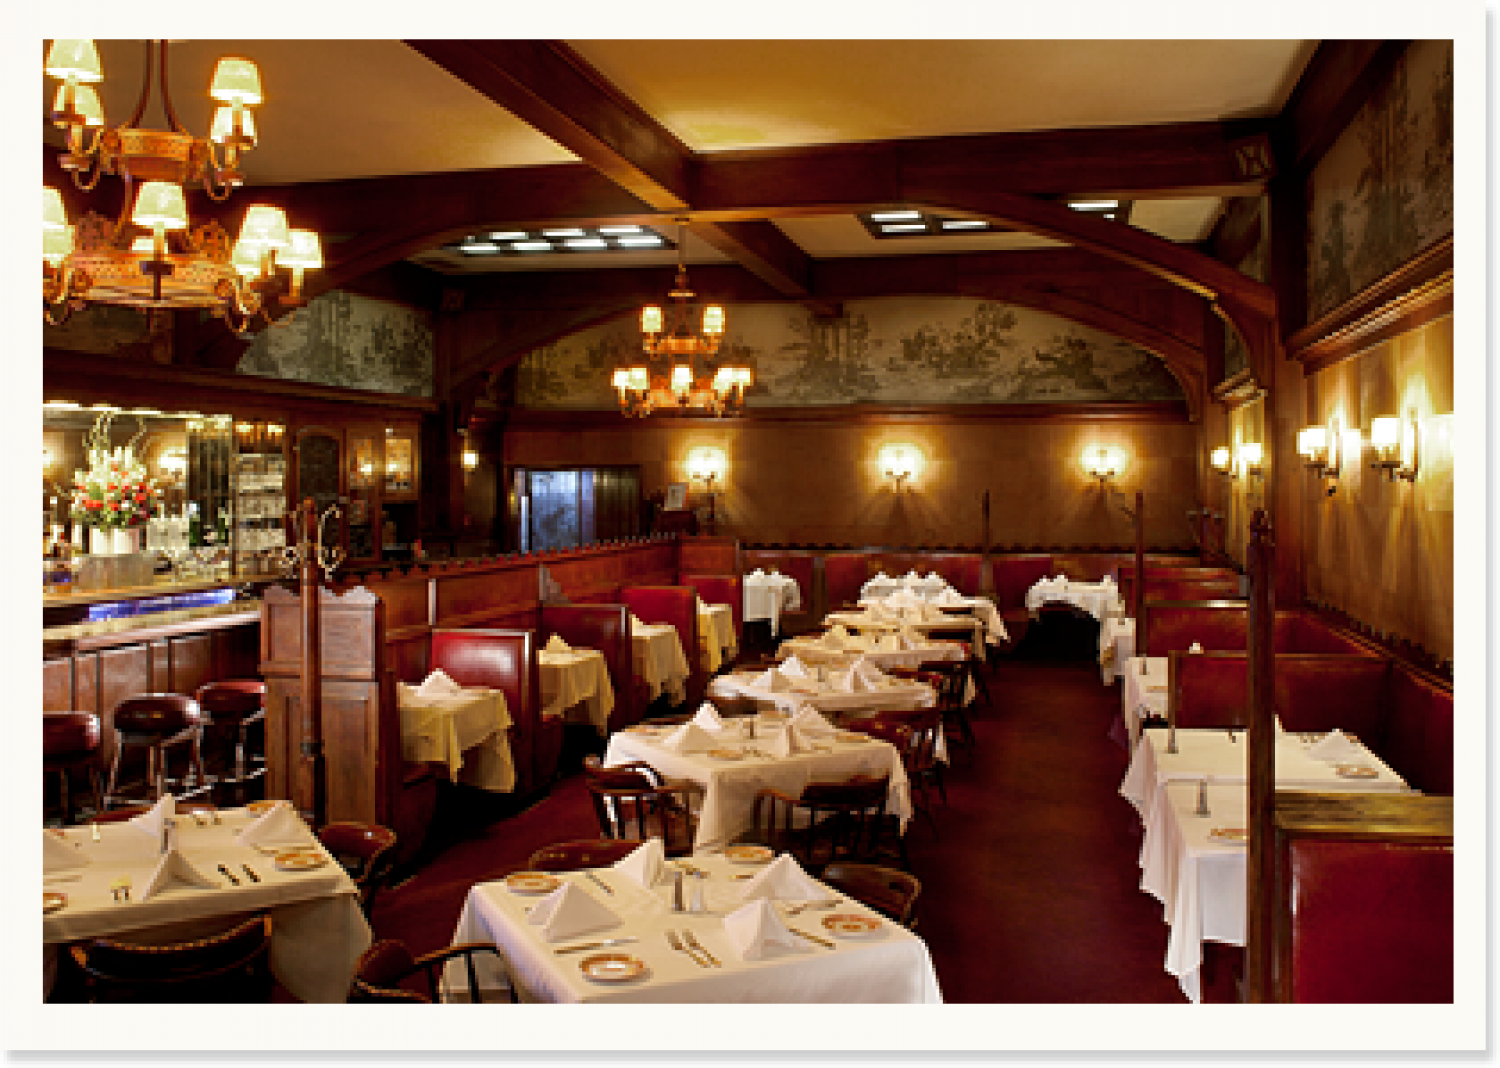 Hollywood S Oldest Restaurant Musso Frank Has Played An Important Role In The Film Industry Since M Classic Restaurant Restaurant Hollywood Restaurants